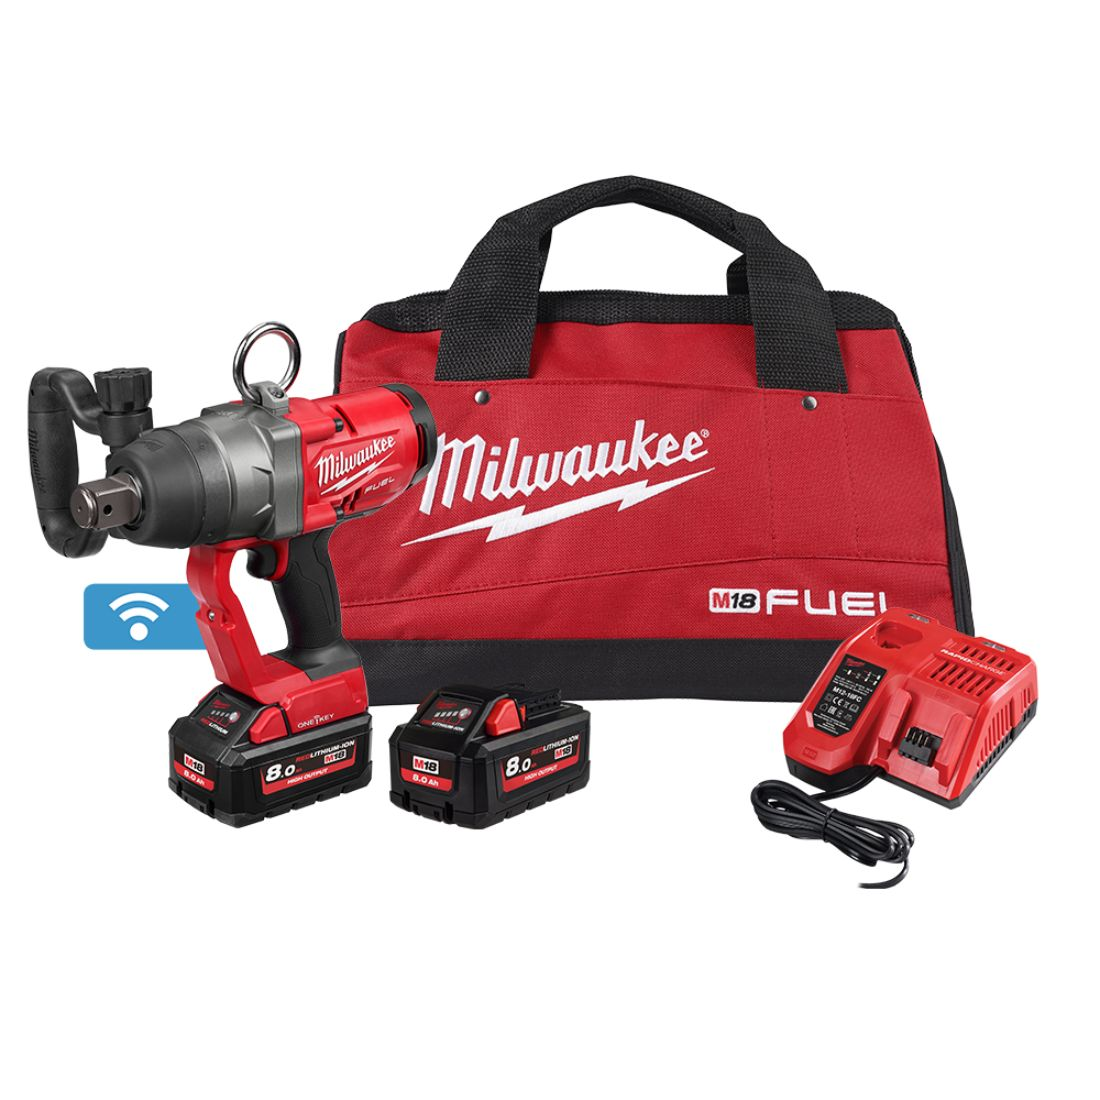 M18 FUEL Impact Wrench Kit 1 inch 8.0Ah